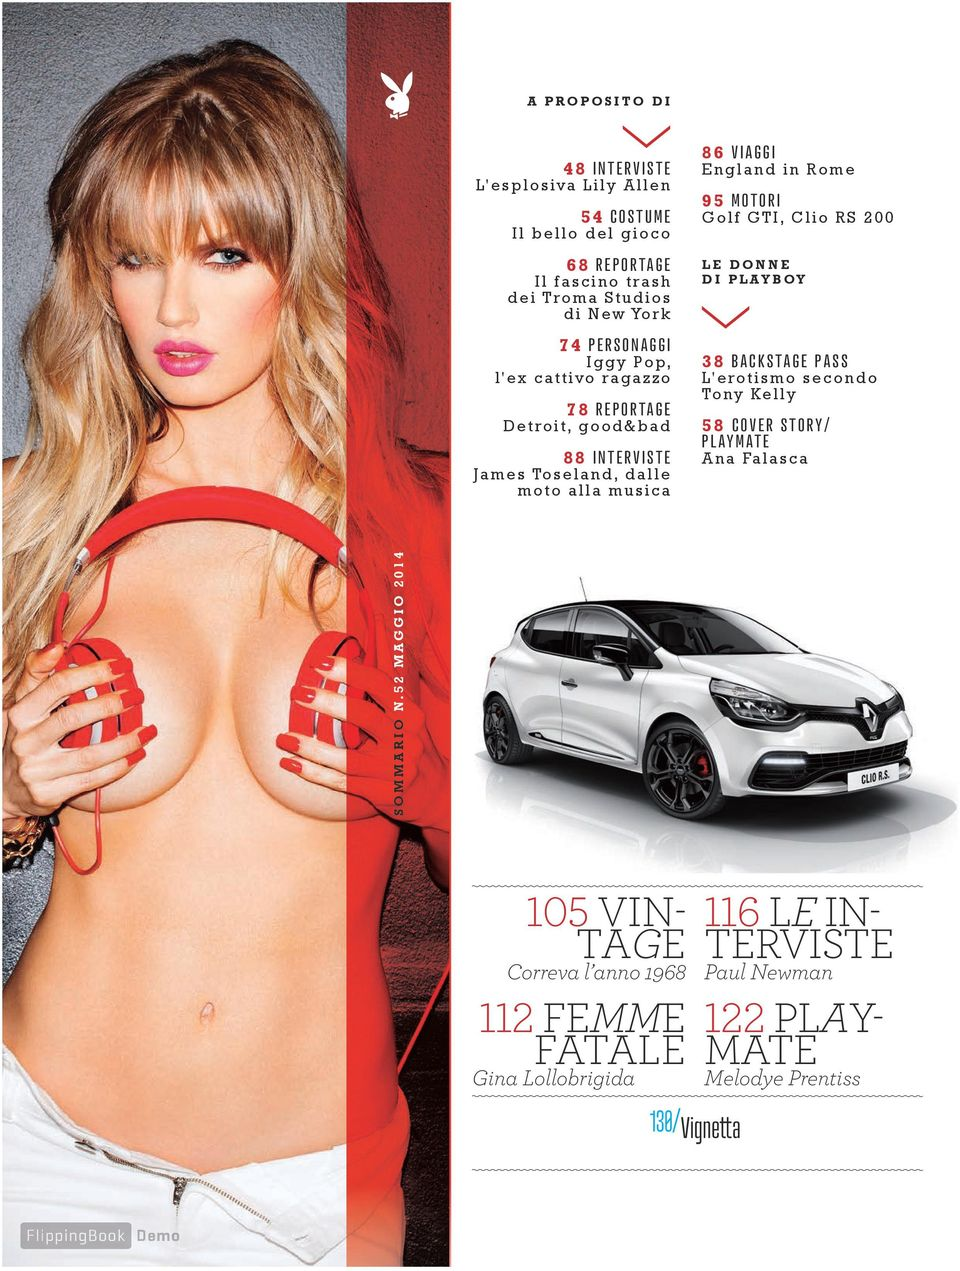 Rome 95 Motori Golf GTI, Clio RS 200 le donne di playboy 38 BACKSTAGE PASS L'erotismo secondo Tony Kelly 58 Cover Story/ PLAYMATE Ana Falasca